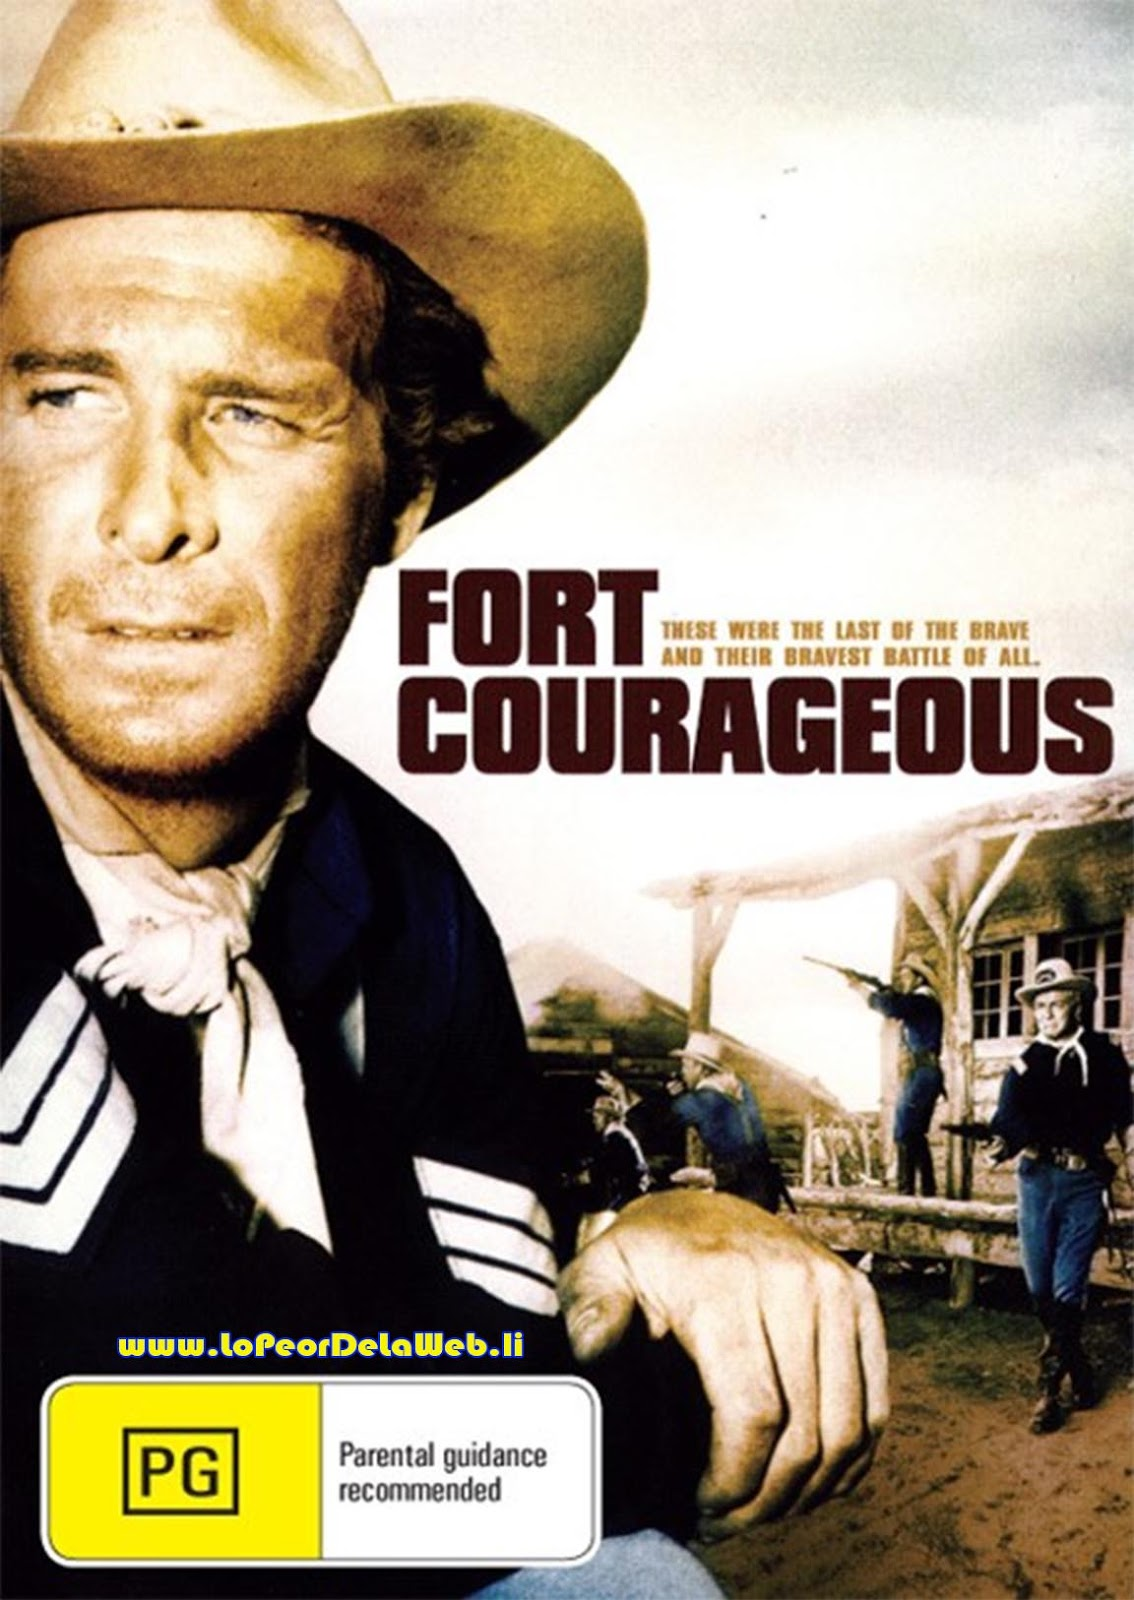 Fuerte Valeroso (Fort Courageous) -1965 - Western